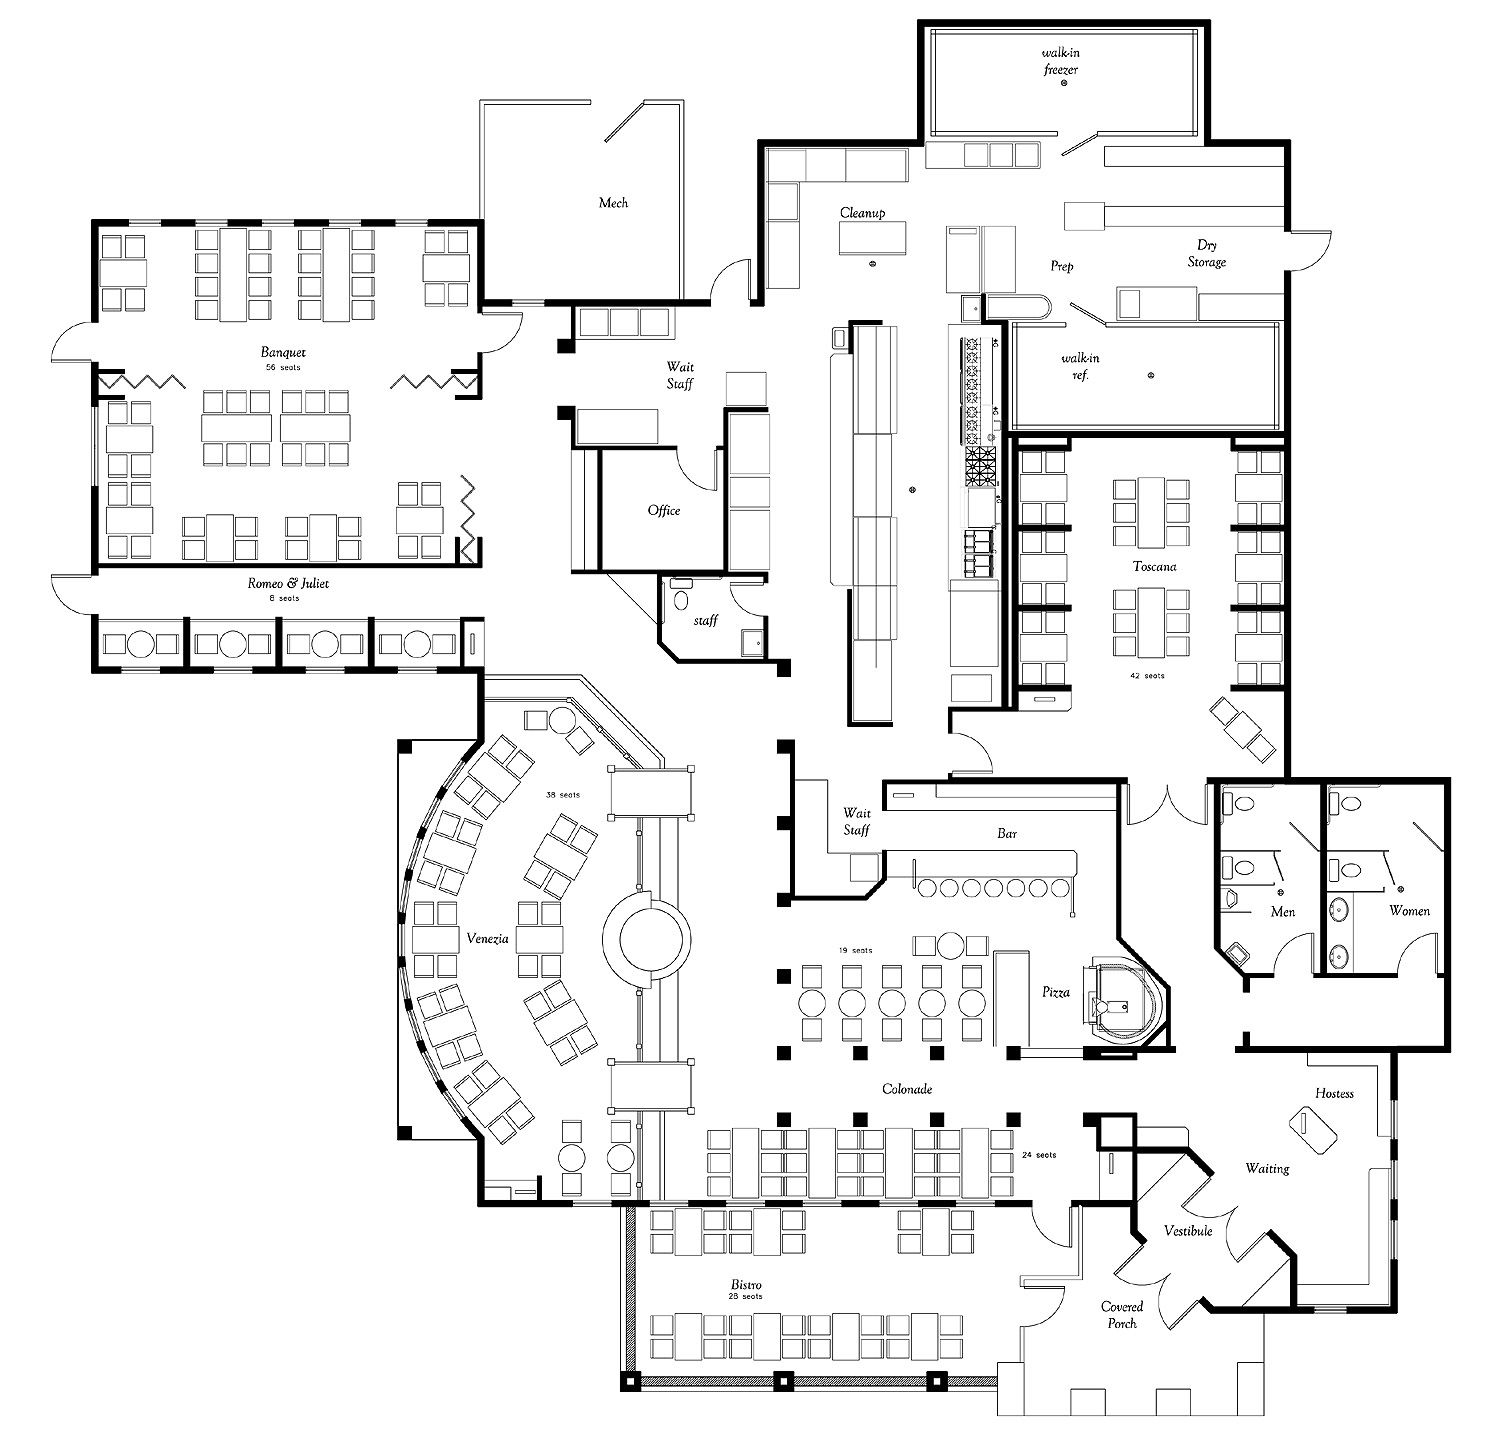 Restaurant Layouts Giovanniitalianrestaurantfloorplan 1500×1447 Pixels